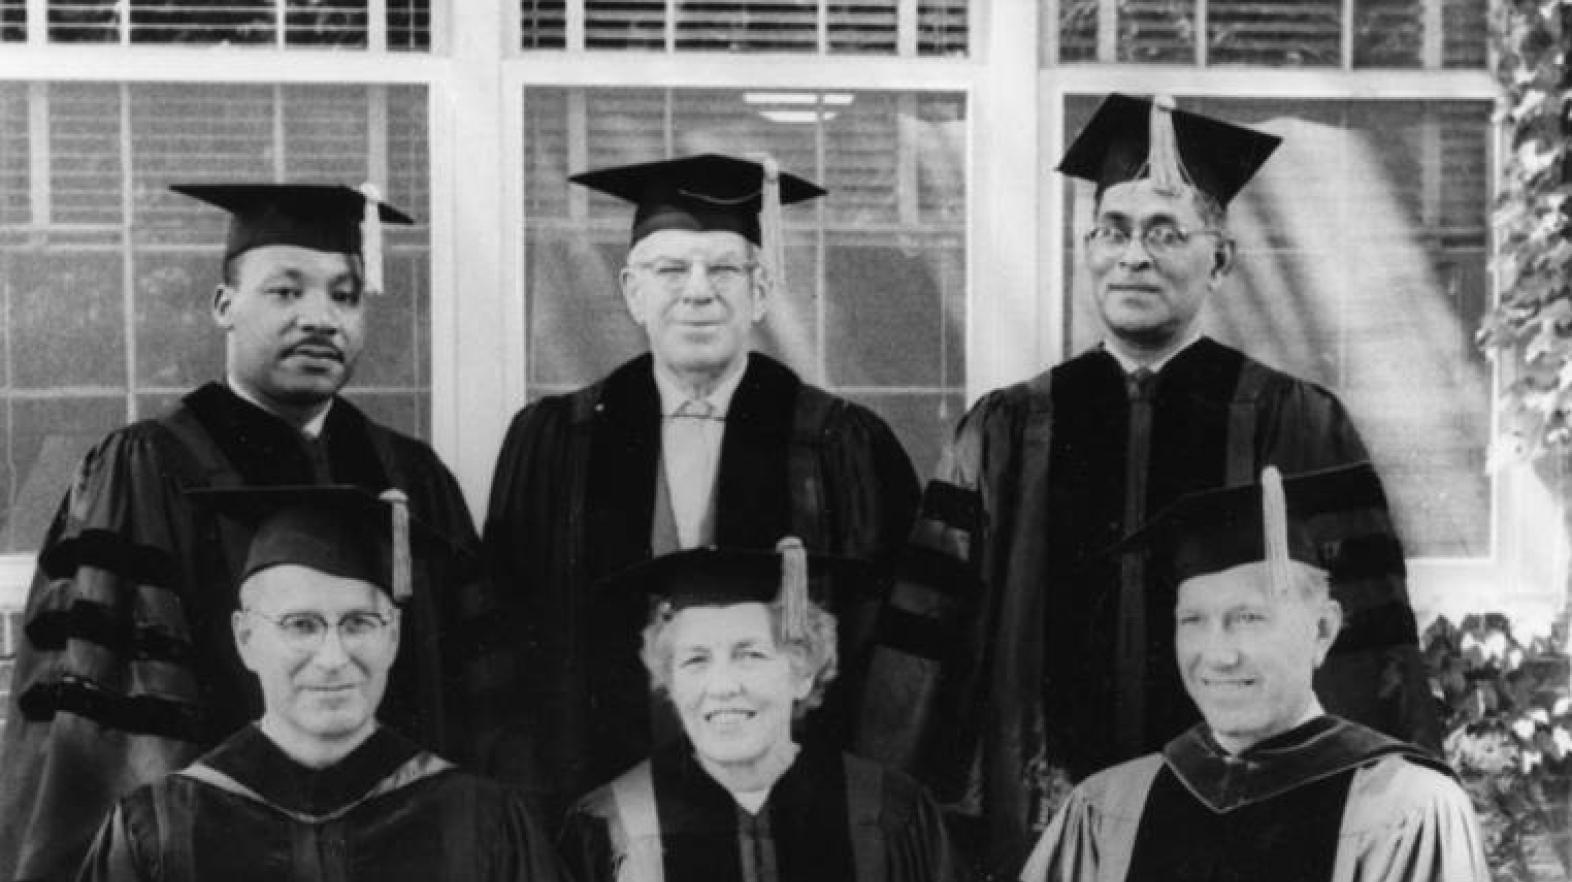 Rev. Martin Luther King Jr. gives the commencement address and receives an honorary Doctor of Humanics on June 14, despite outside attempts to persuade the College to rescind its invitation to King.